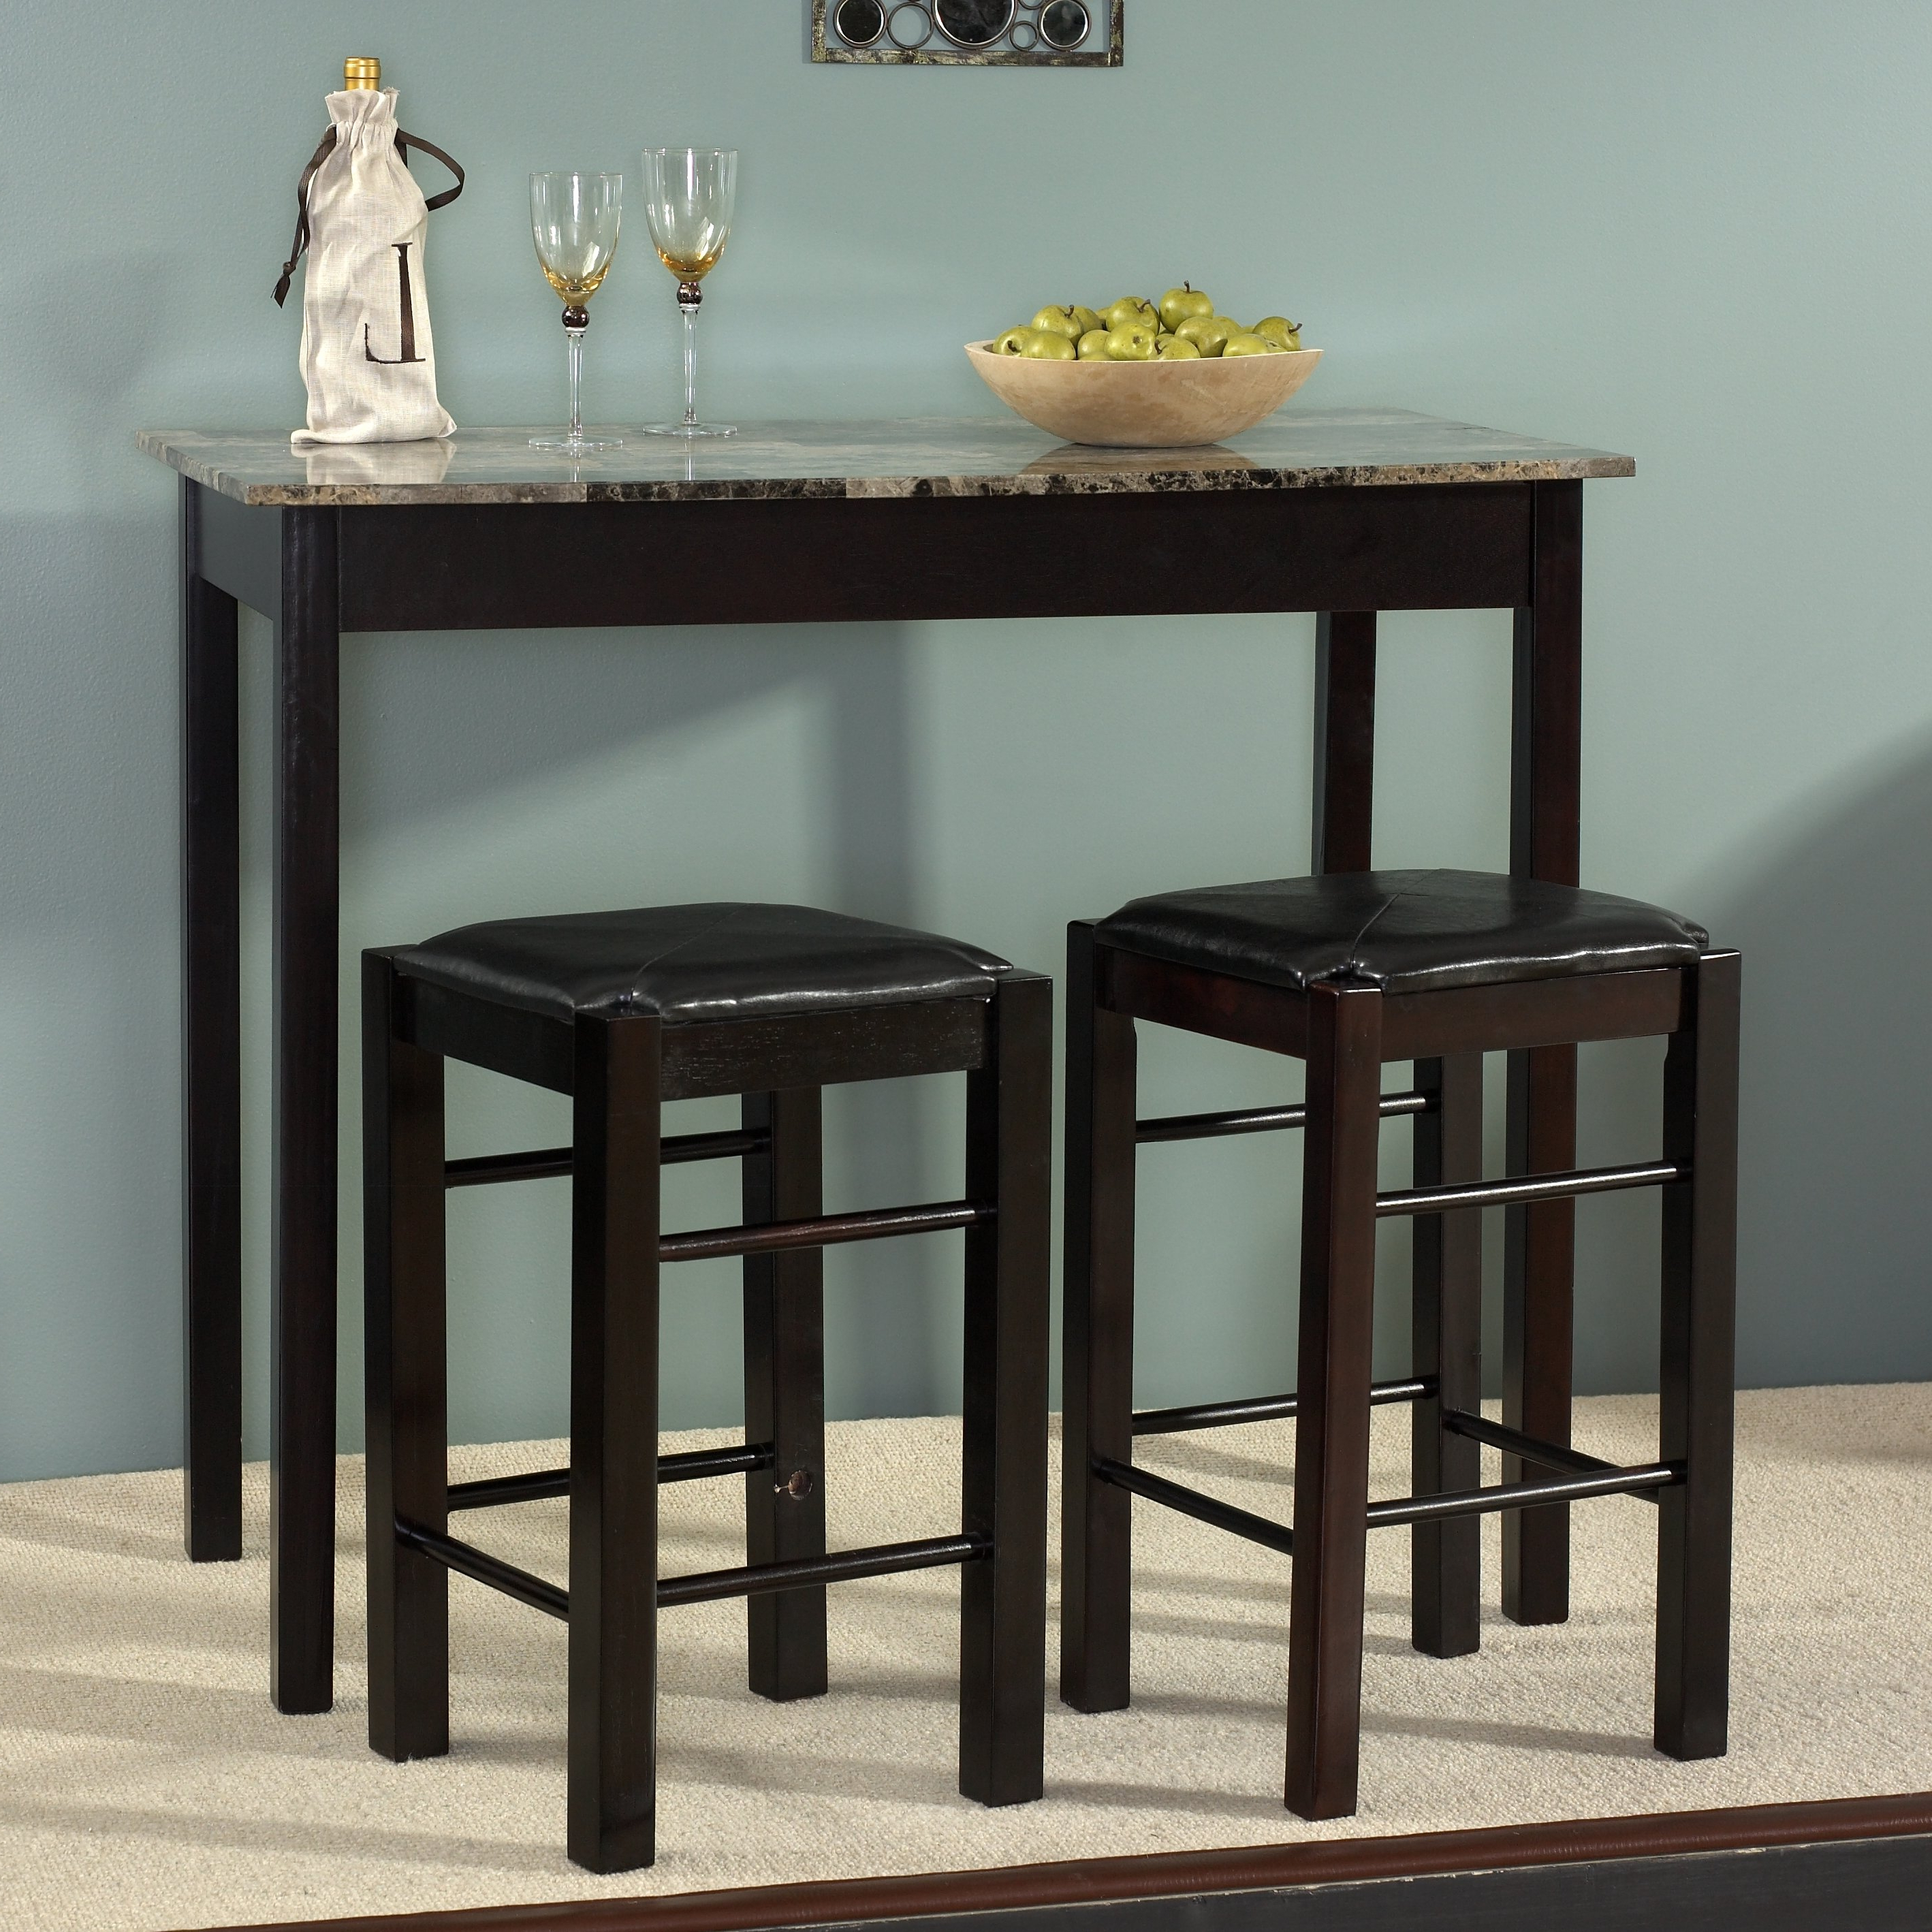 Sheetz 3 Piece Counter Height Dining Sets Throughout Most Recent Sheetz 3 Piece Counter Height Dining Set & Reviews (View 2 of 25)